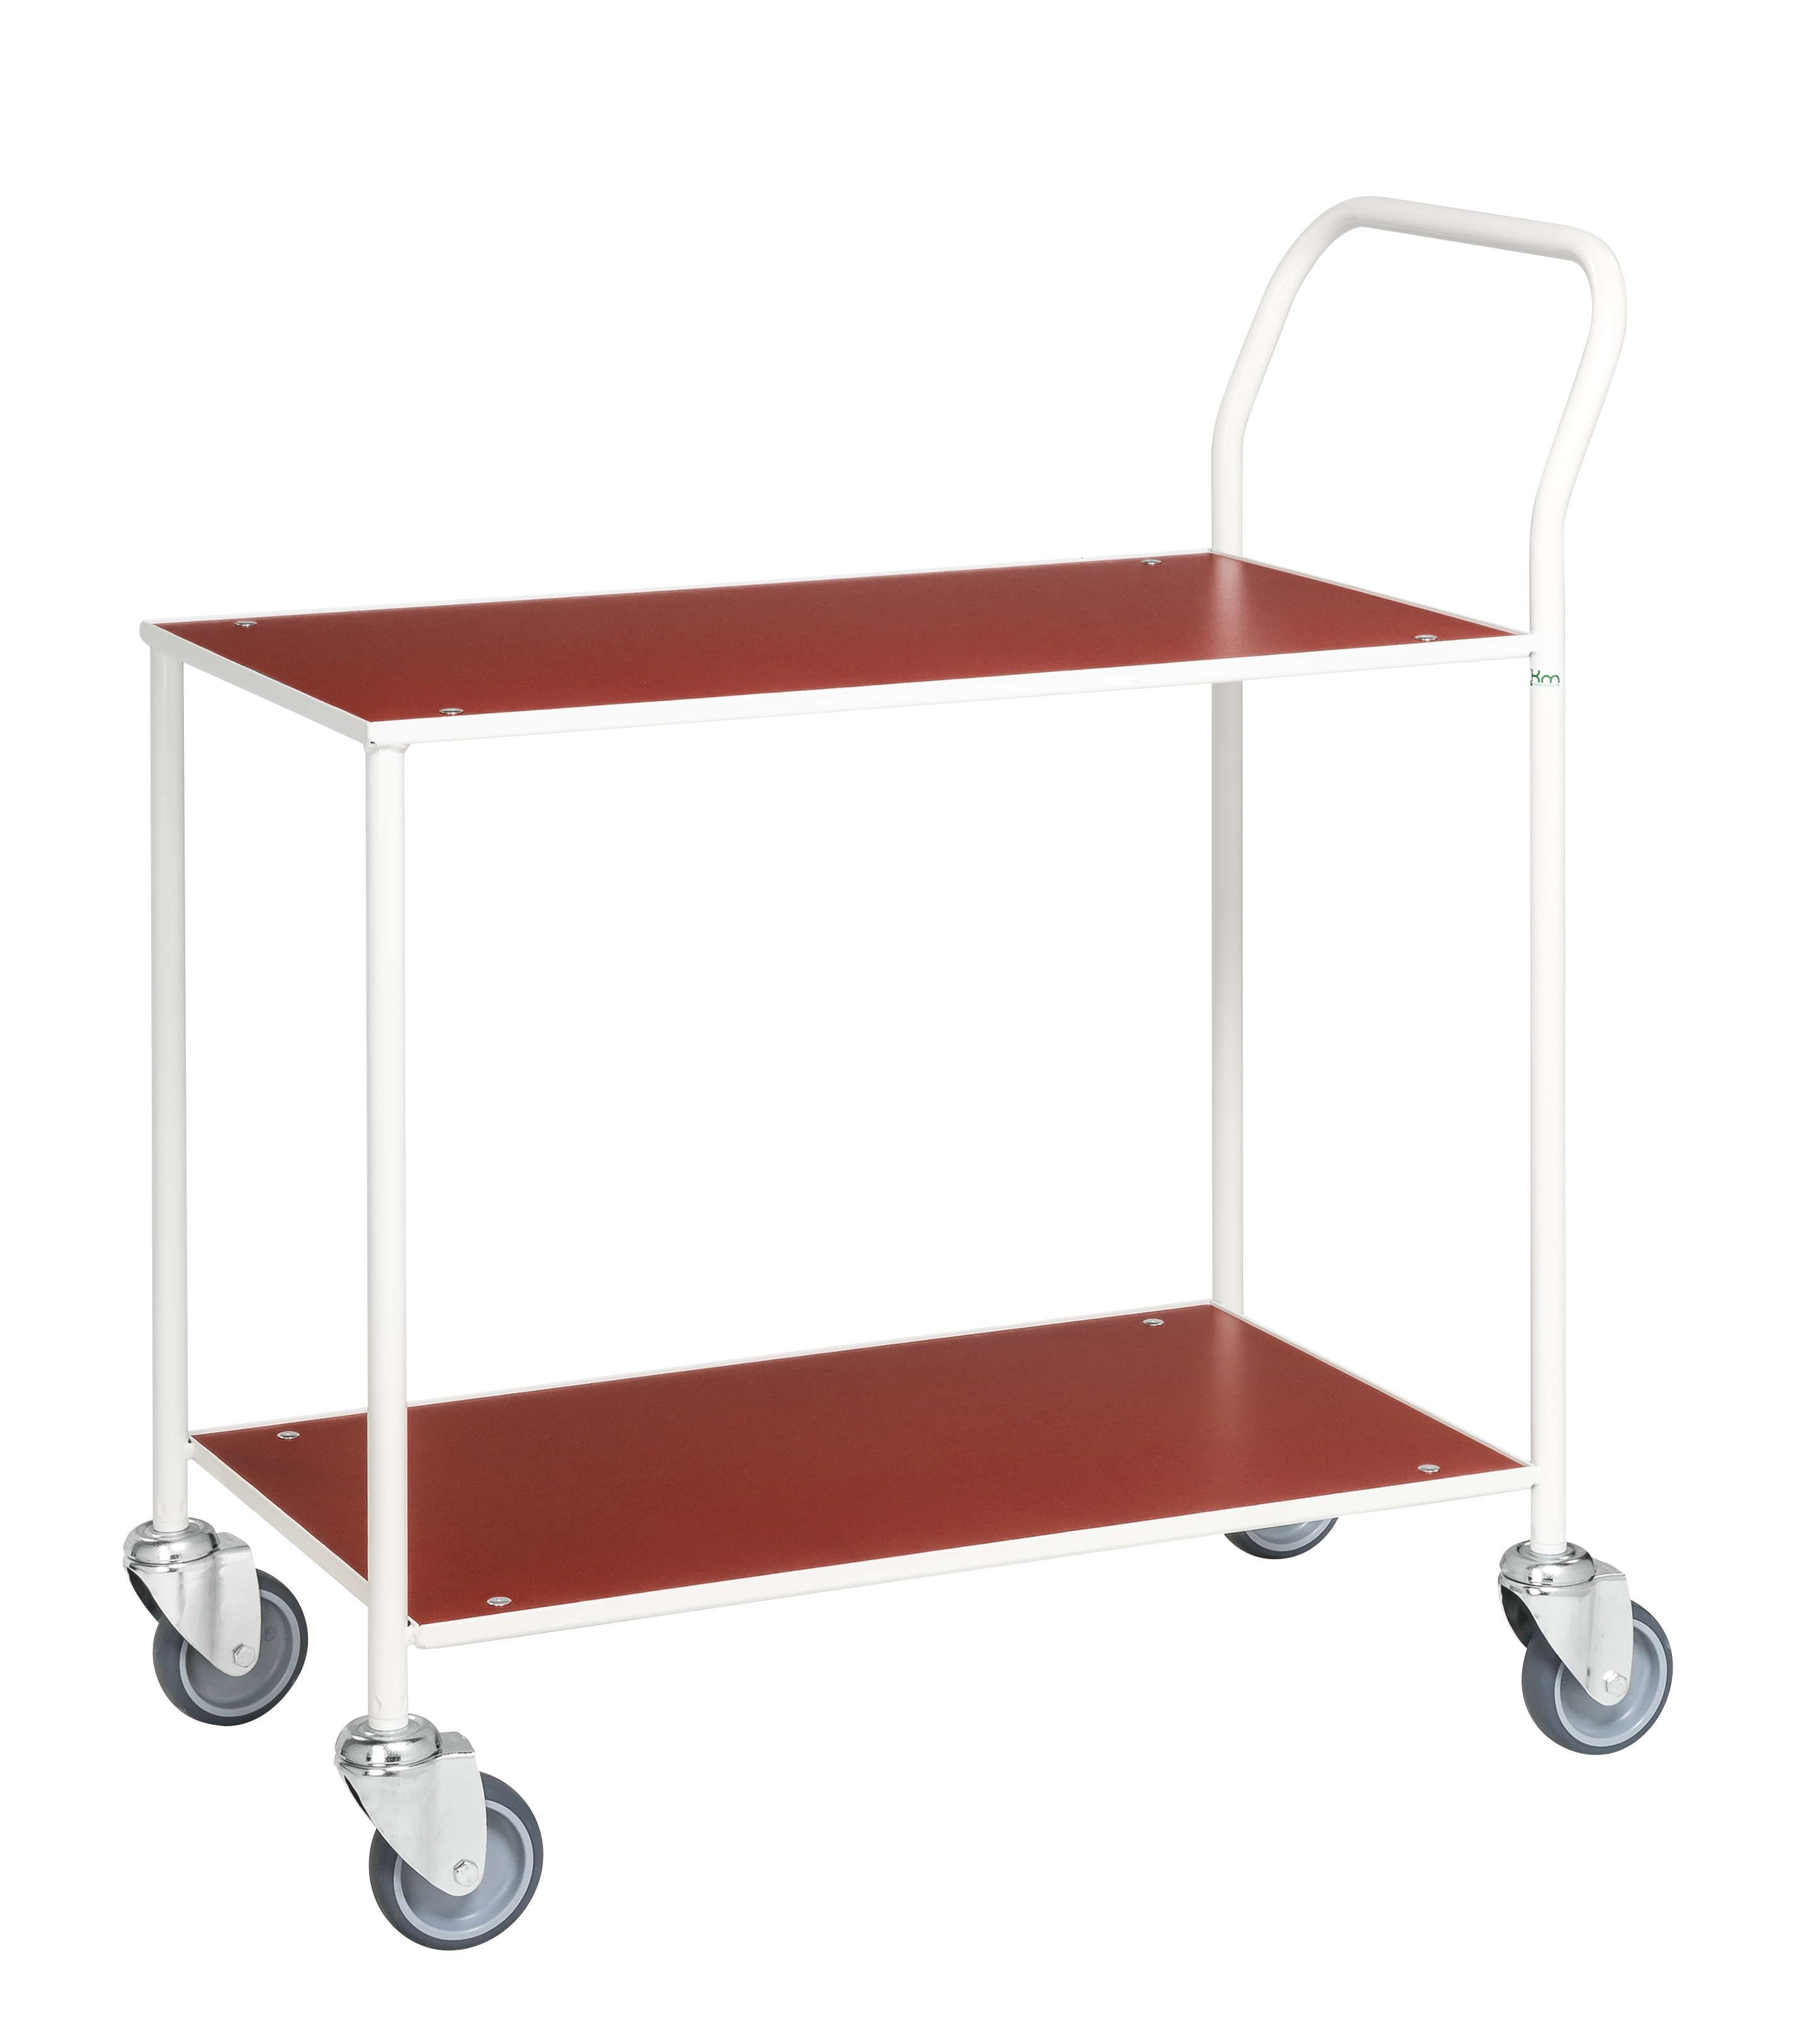 Small table trolley, fully welded KM173-1B